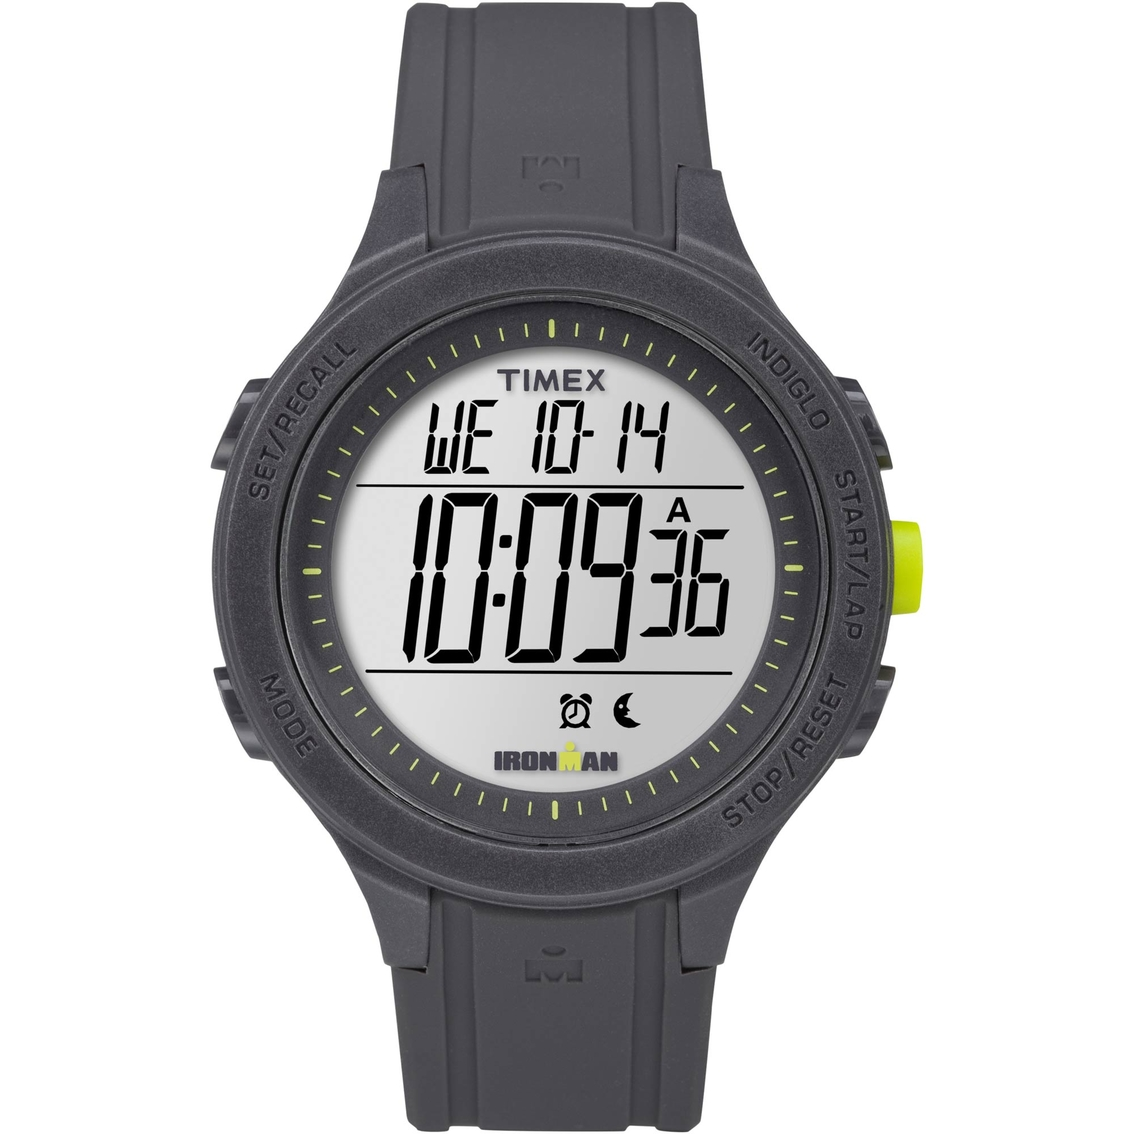 htm lcd product watches item price lowest p